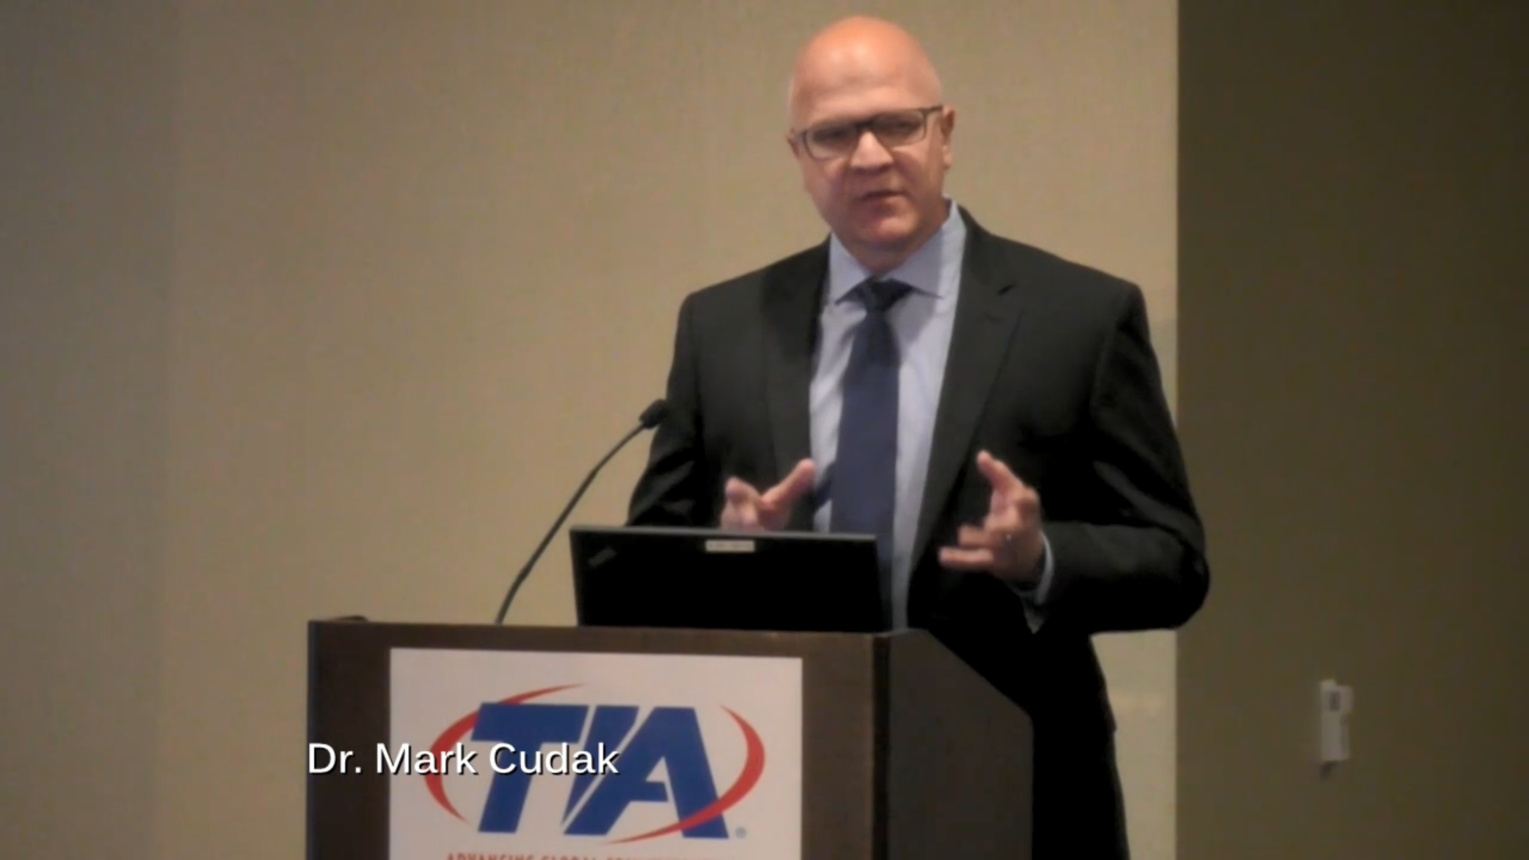 Keynote: Massive MIMO for the New Radio – Overview and Performance - Dr. Mark Cudak, Nokia